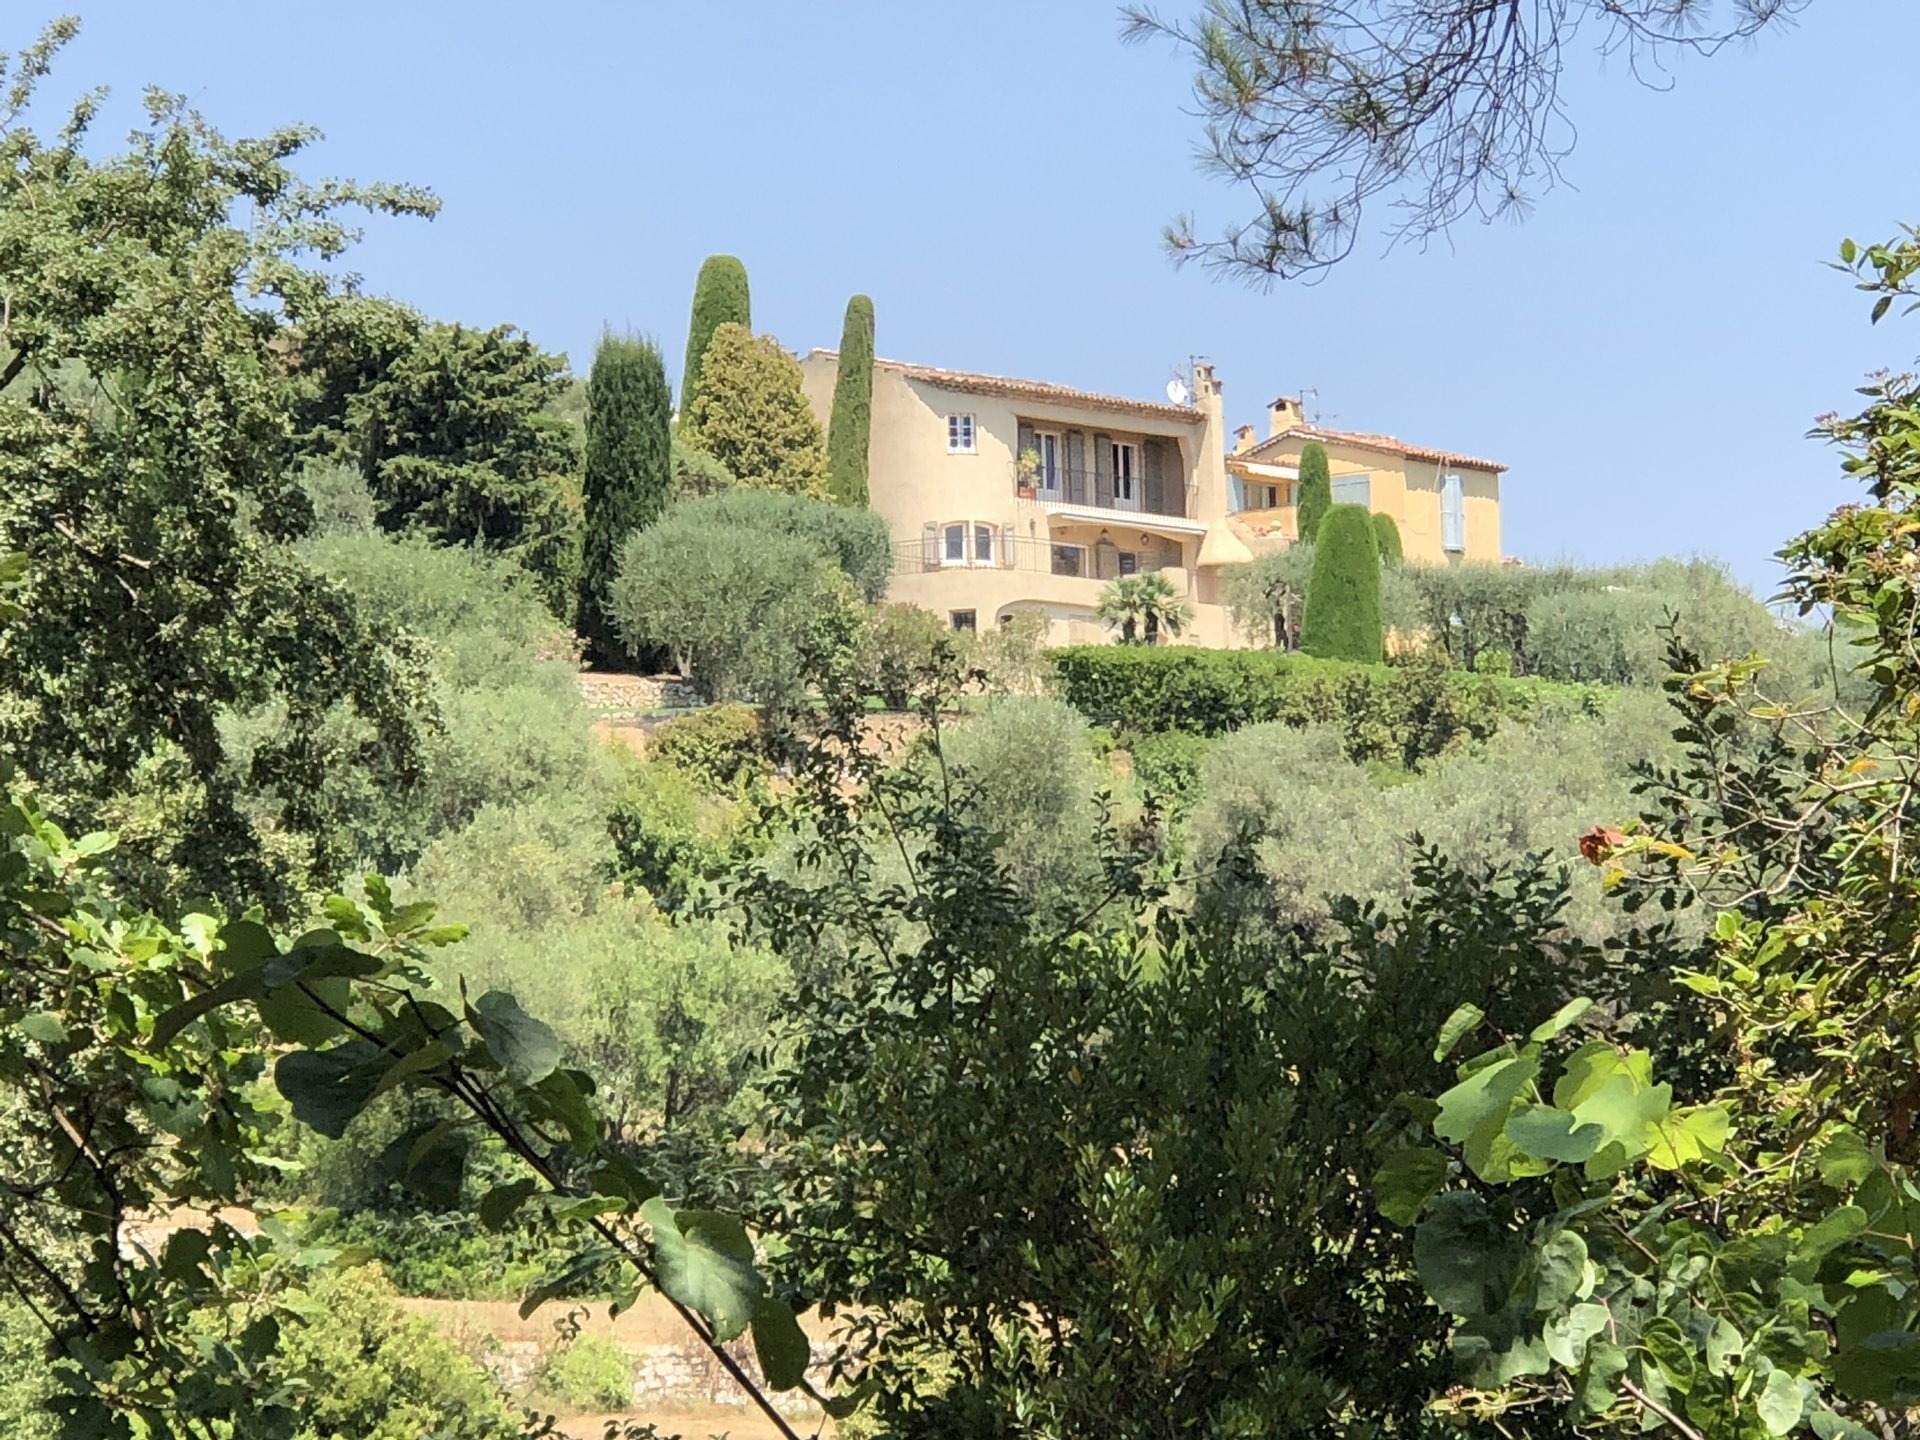 UNE ADRESSE EXCLUSIVE SUR LA FRENCH RIVIERA